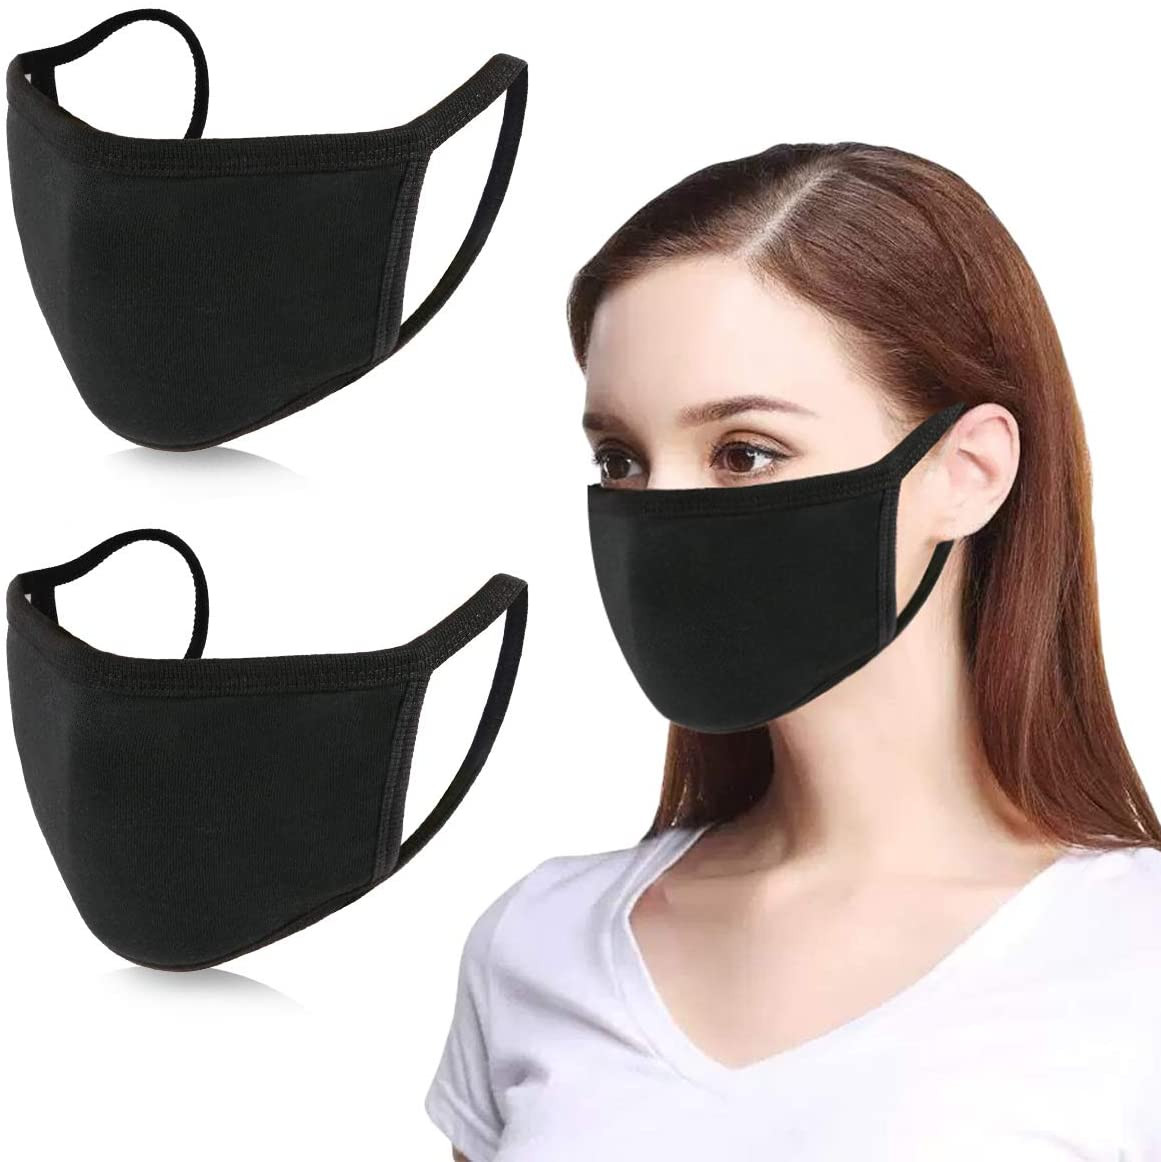 2 Pcs Face Mask Unisex Outdoor Cycling Dustproof Cotton Mascarillas Reusable Anti-fog Safety Face Respirator Cover Washable